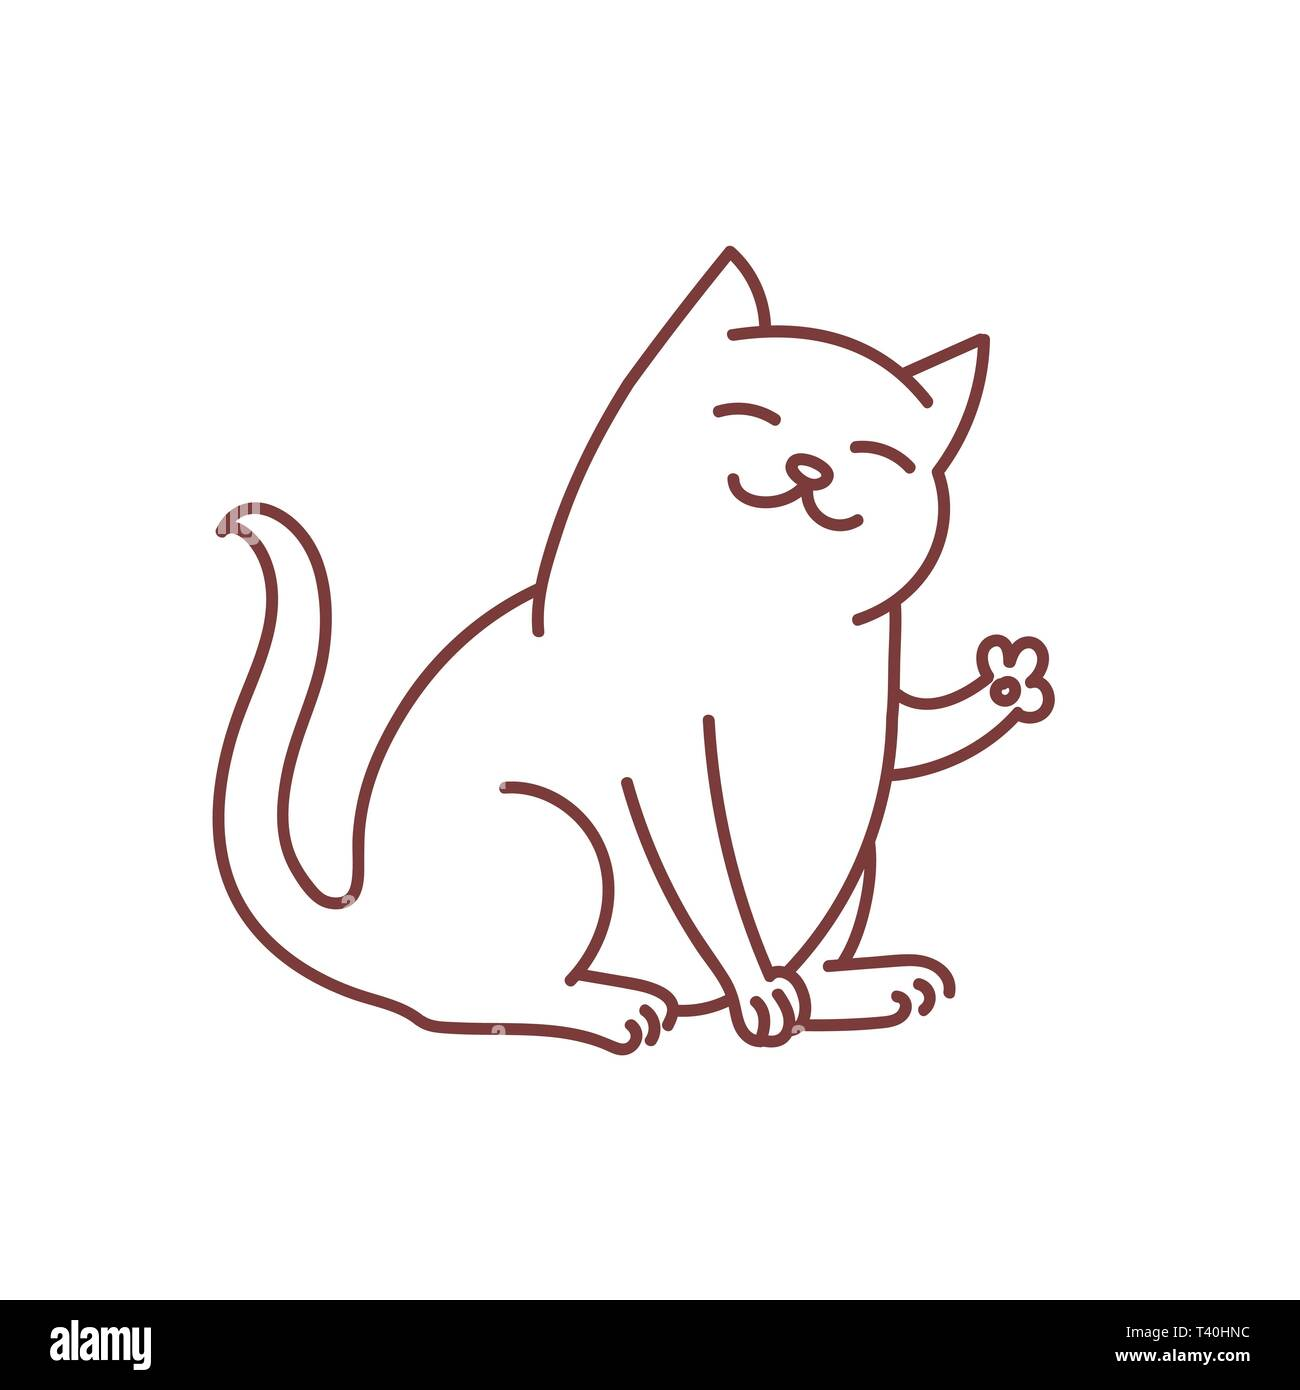 Friendly kitty waves paw and says hello greeting, doodle of cat cute and good kitten linear art oultine isolated on white - Stock Image